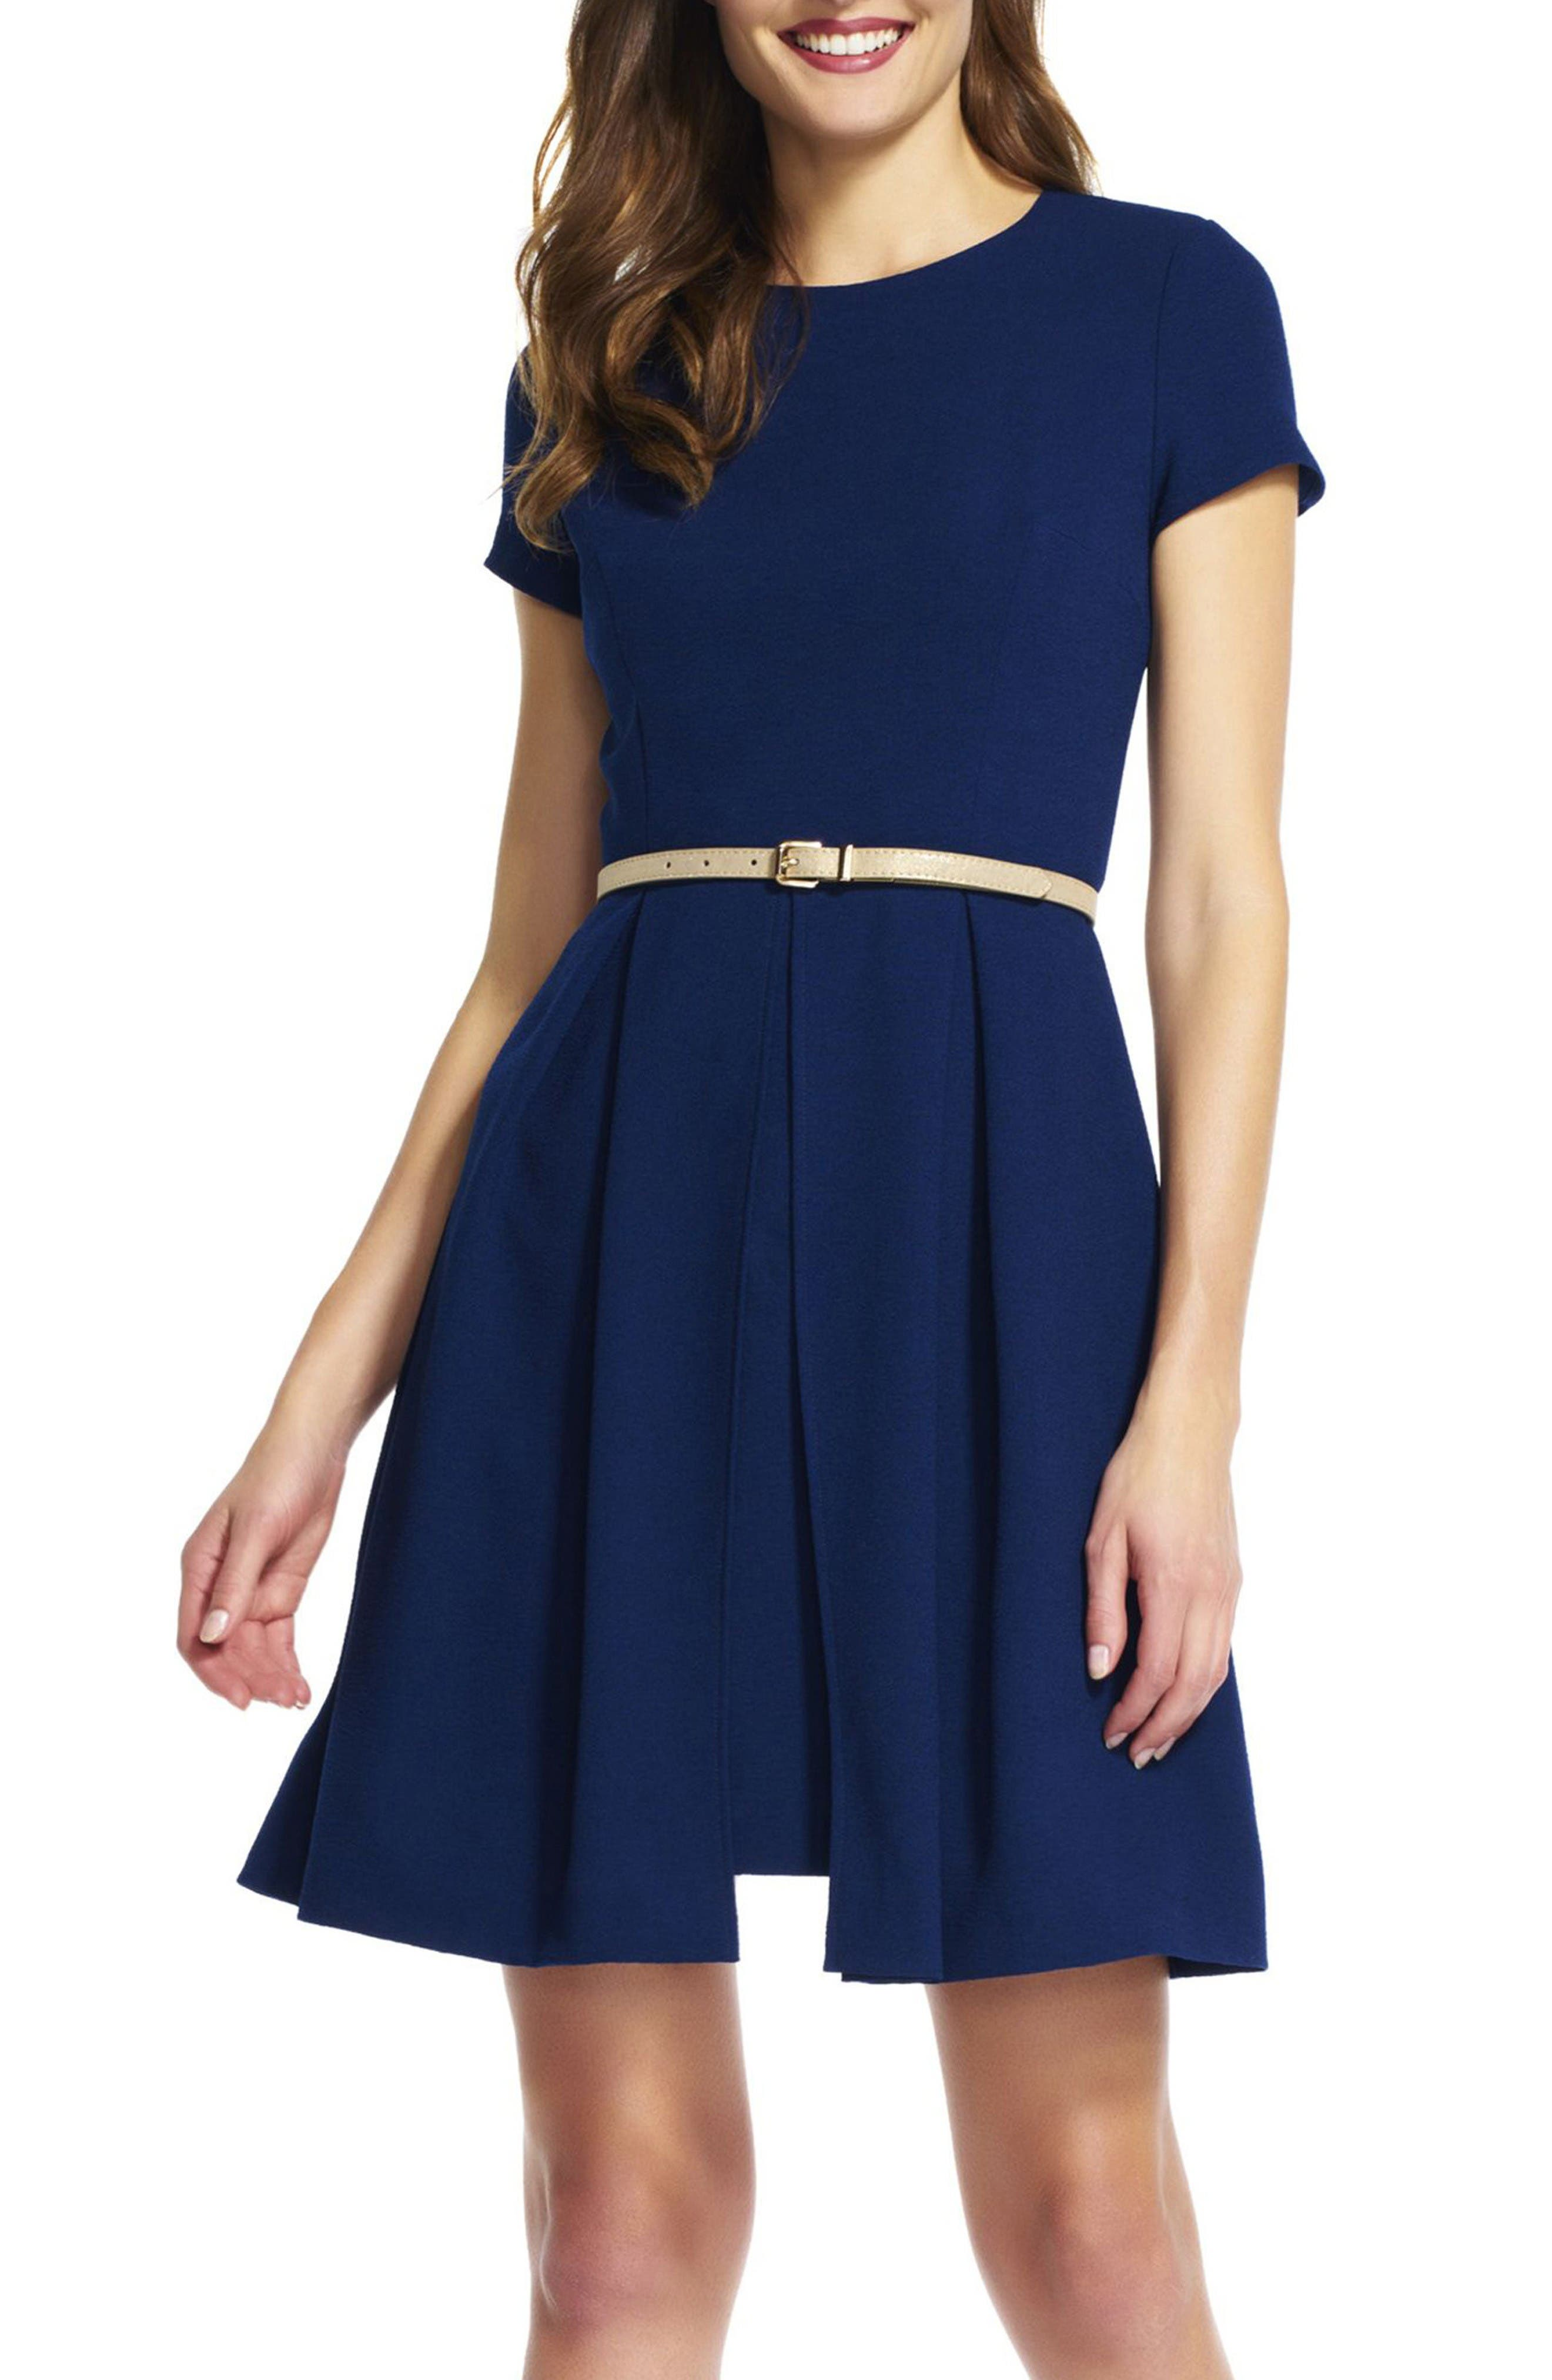 Alternate Image 1 Selected - Adrianna Papell Belted Textured Crepe Fit & Flare Dress